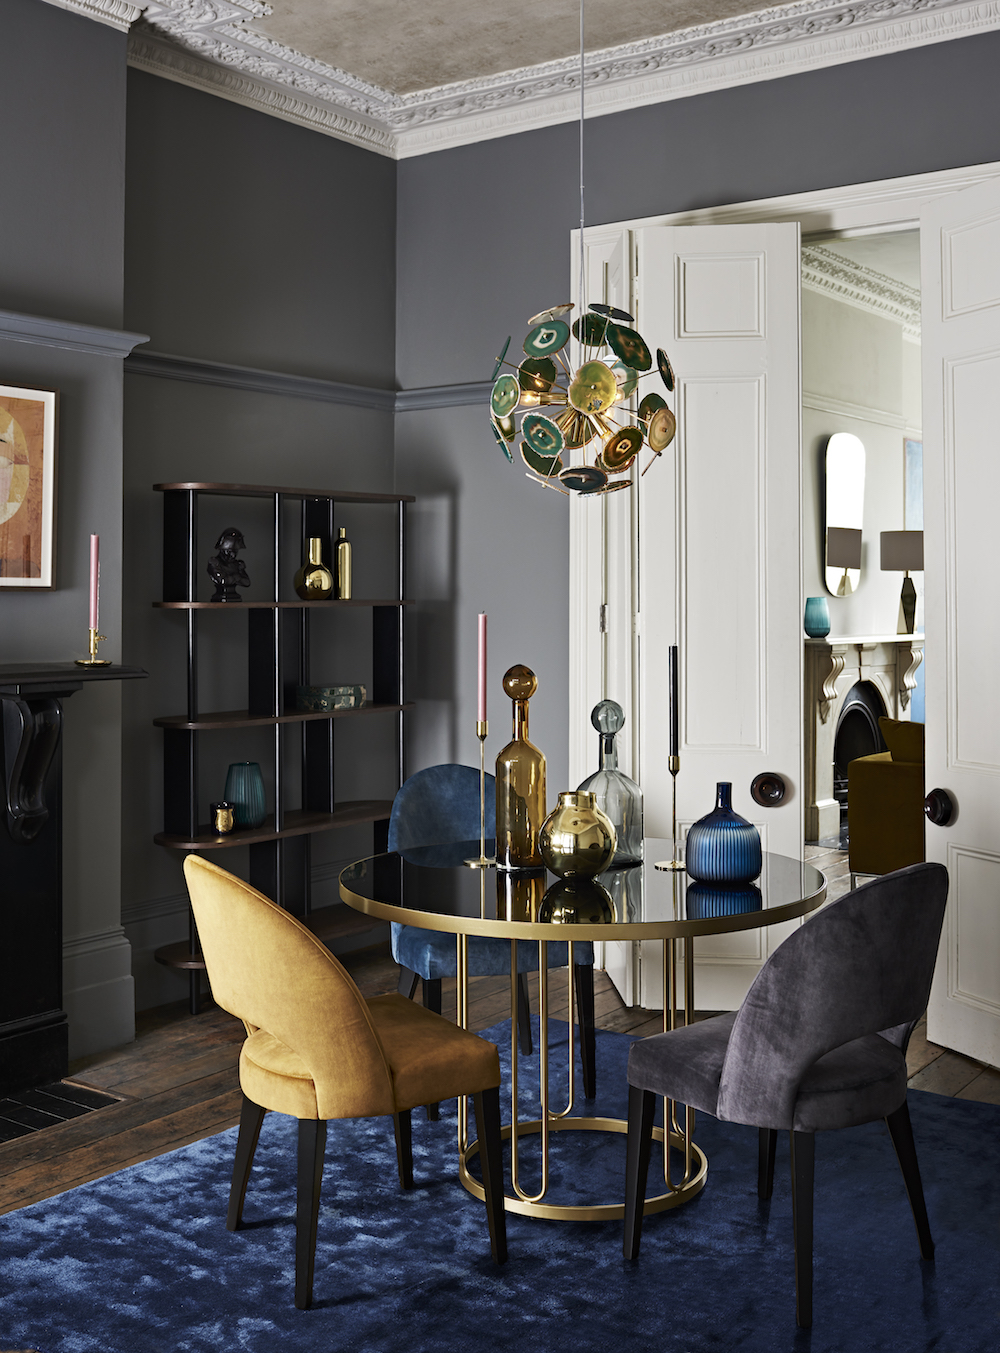 John Lewis Farrugia Dining Table, £699, Moritz Dining Chairs, £299 each, Yoko Shelving Unit, £699, Delilah Agate Ceiling Pendant, £450